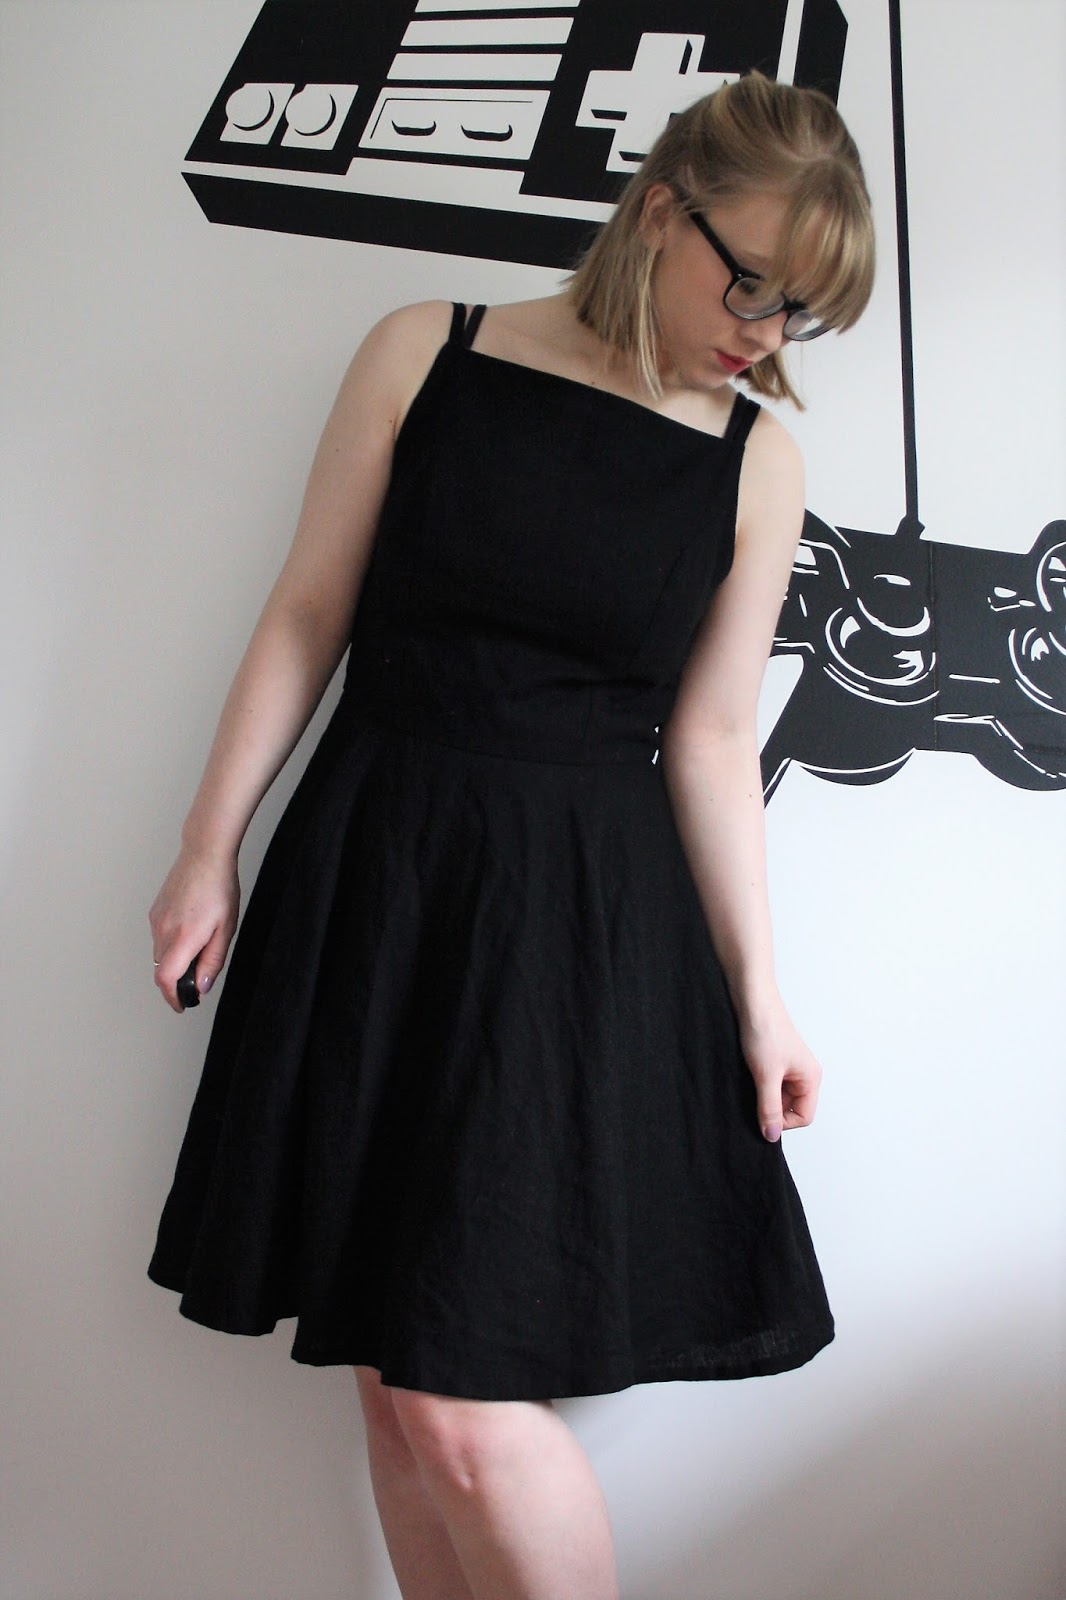 Audrey hepburns little black dress hawked off at auction new pics